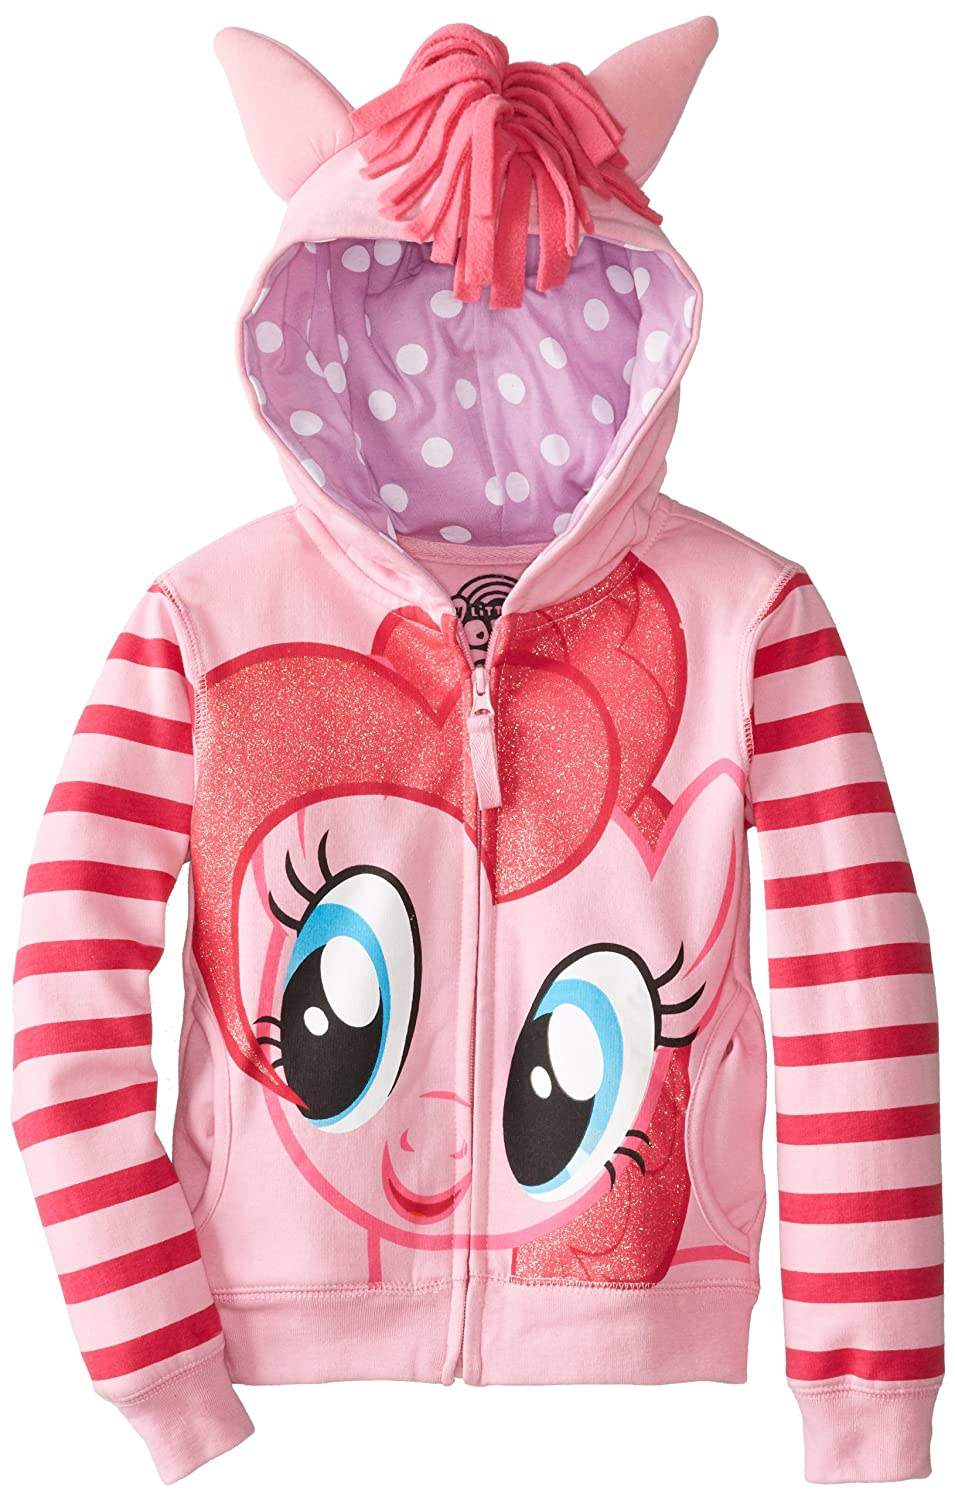 My Little Pony Girls' Pinky Pie Hoodie and Hoodie/Tee Bundle